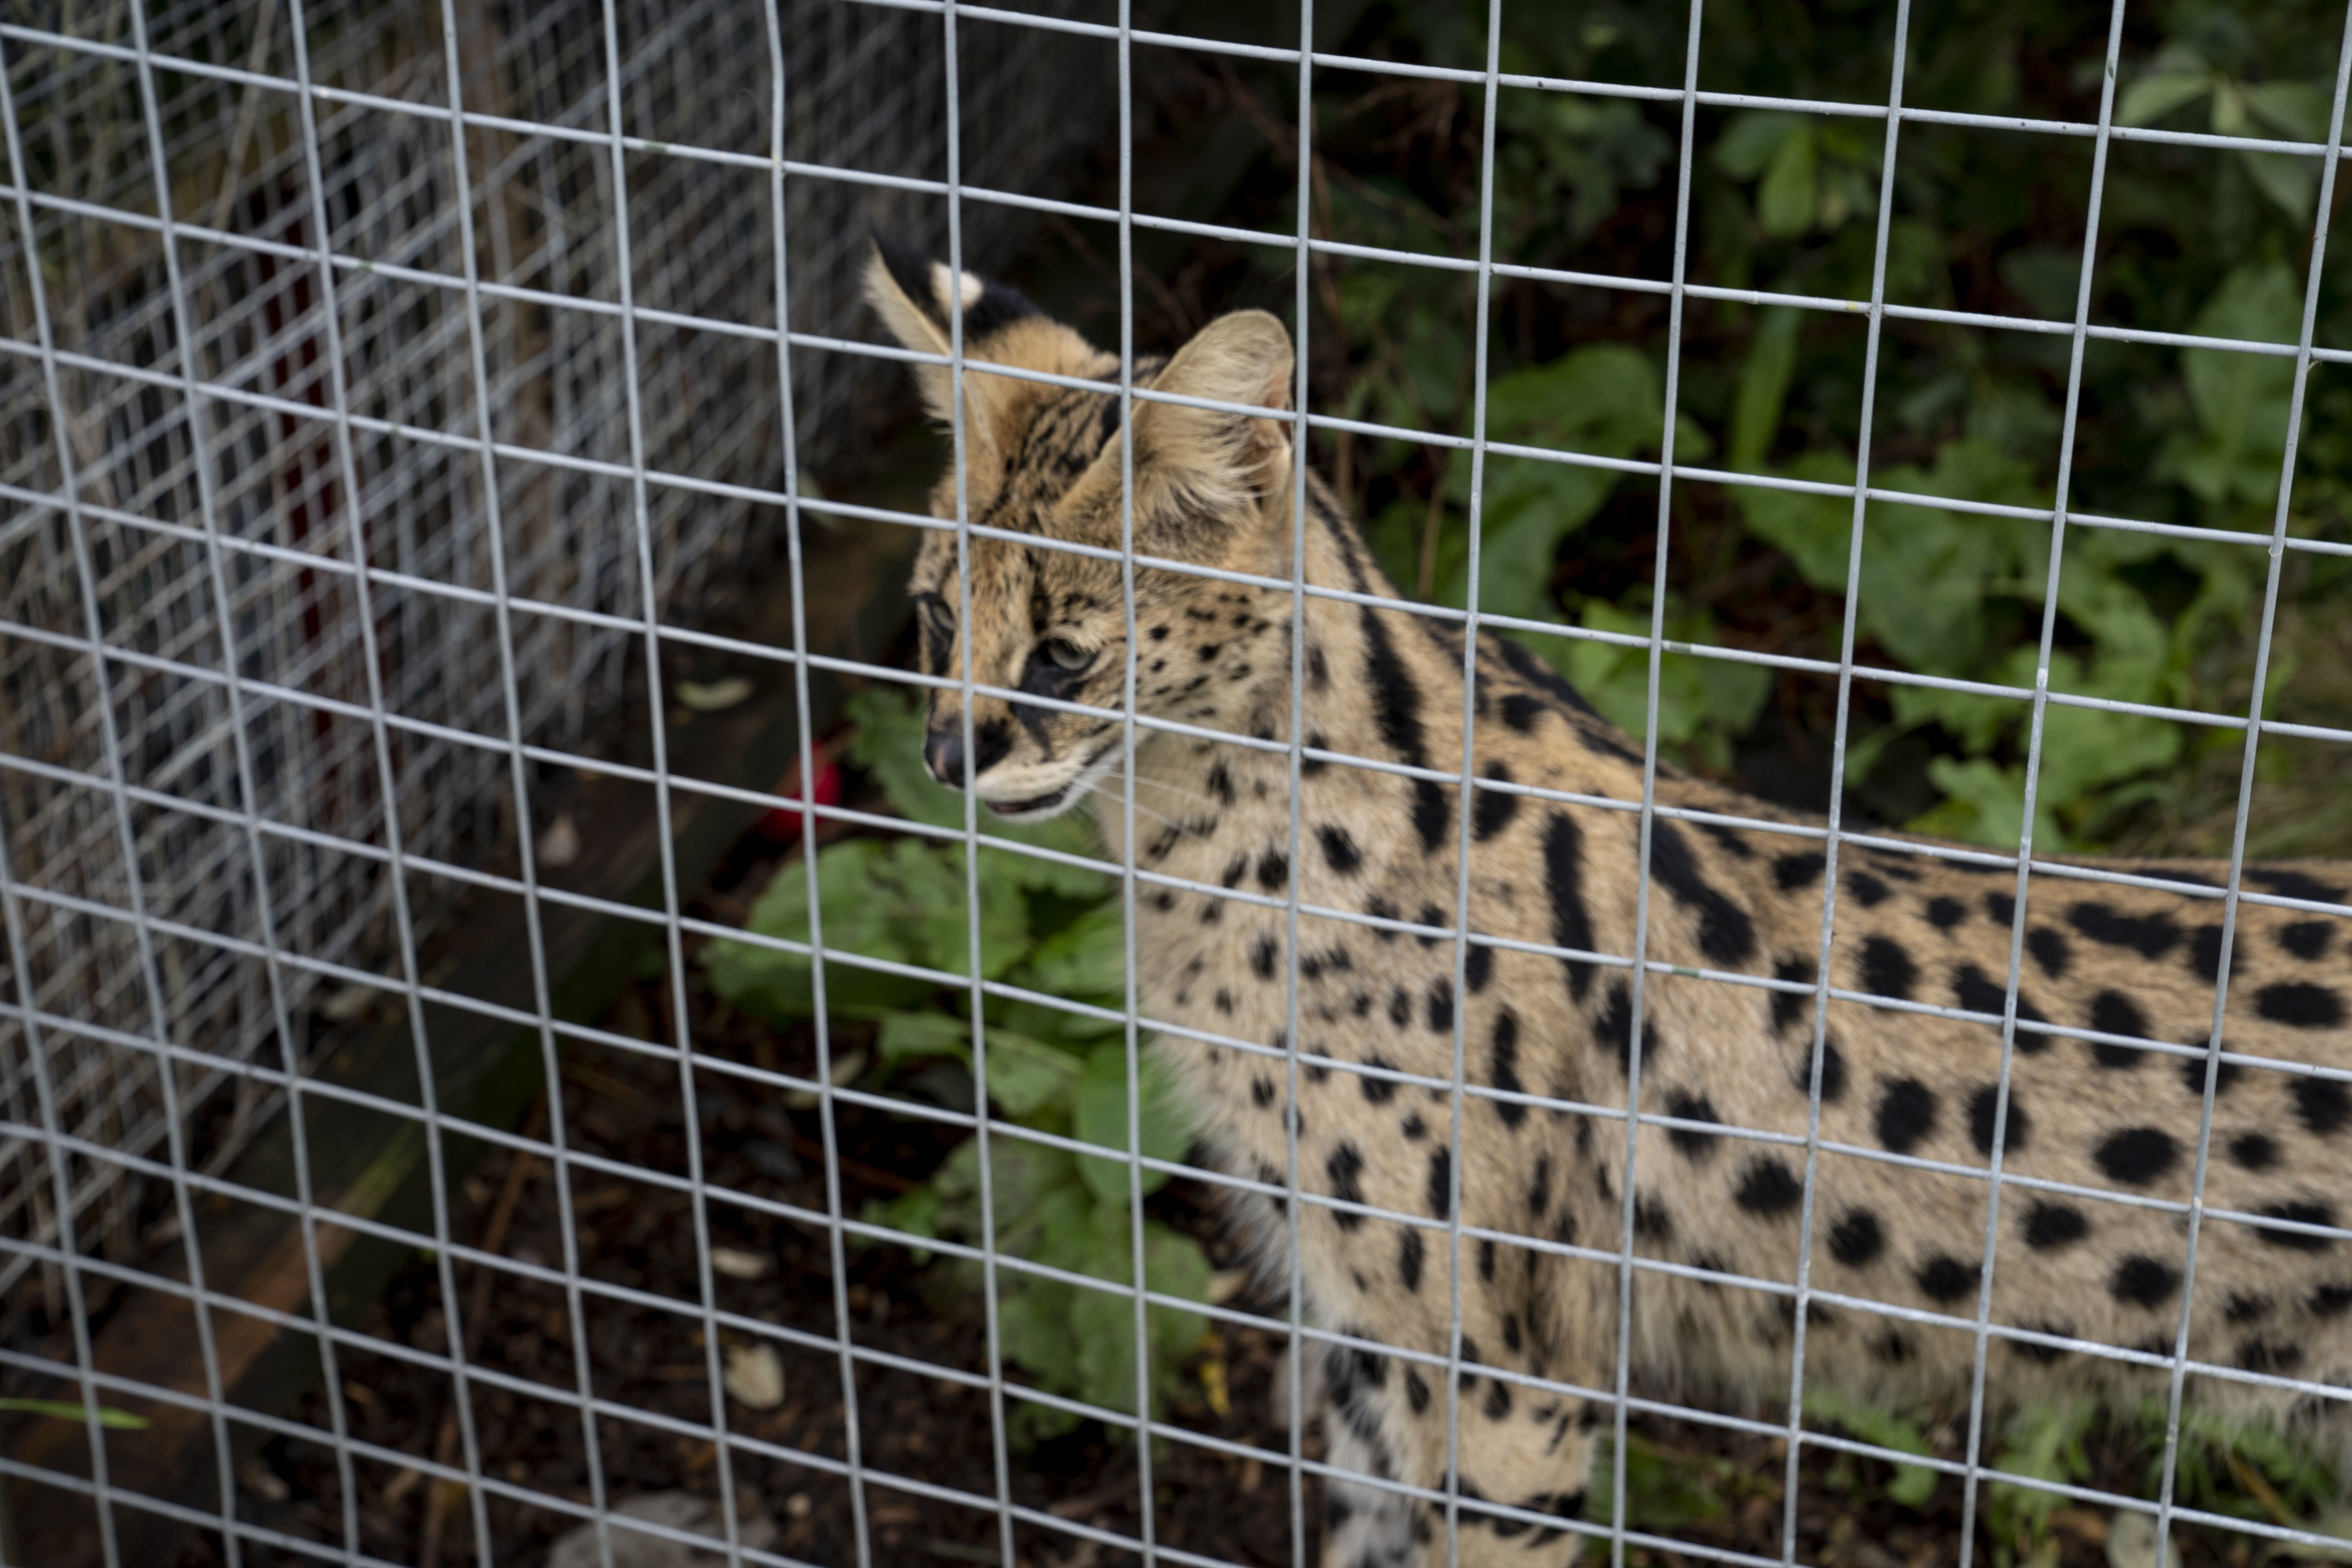 VICTORY: Borth Zoo Ordered to Rehome Big Cats